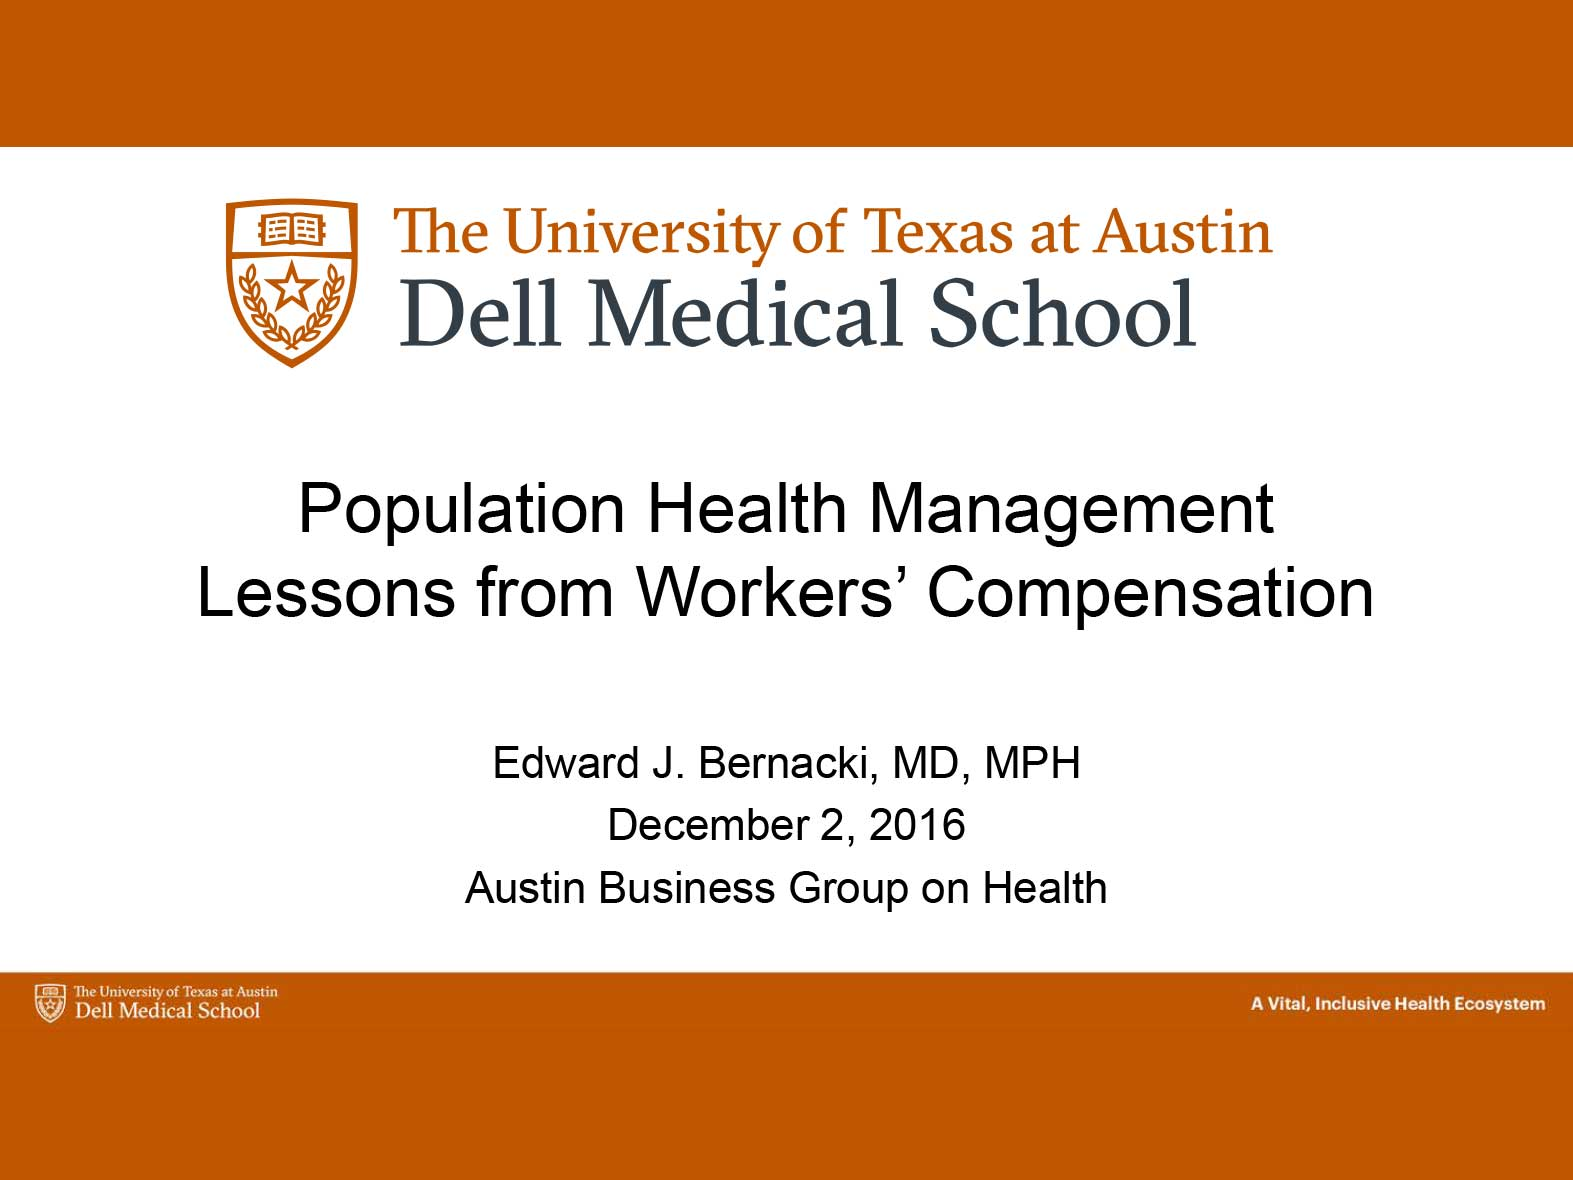 Population Health Management Lessons from Workers' Compensation